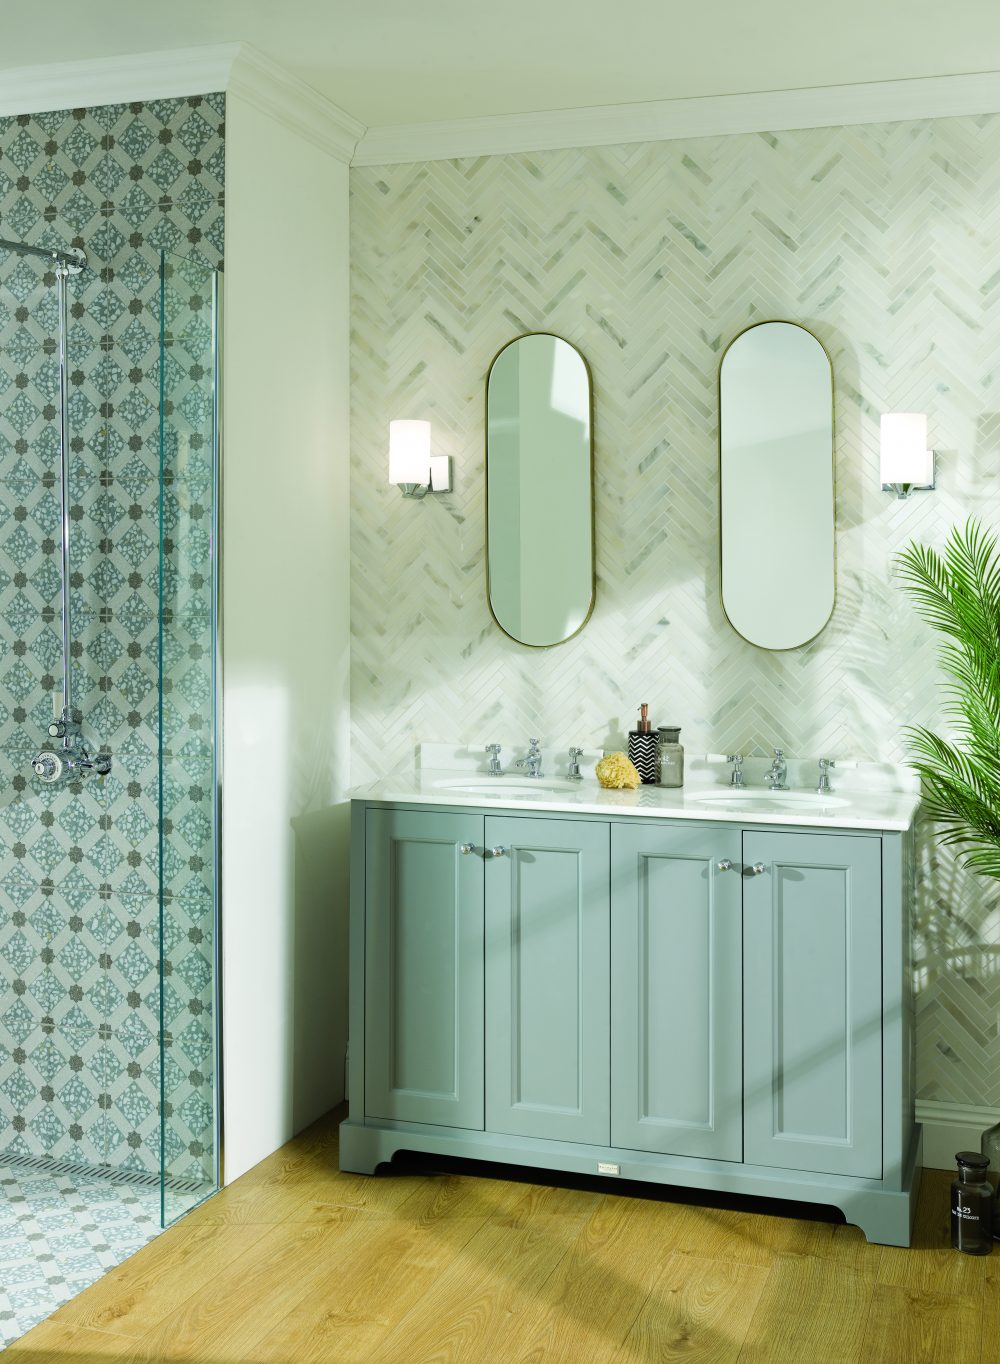 The Plummett Grey Double Furniture Unit and Bayswater Brassware